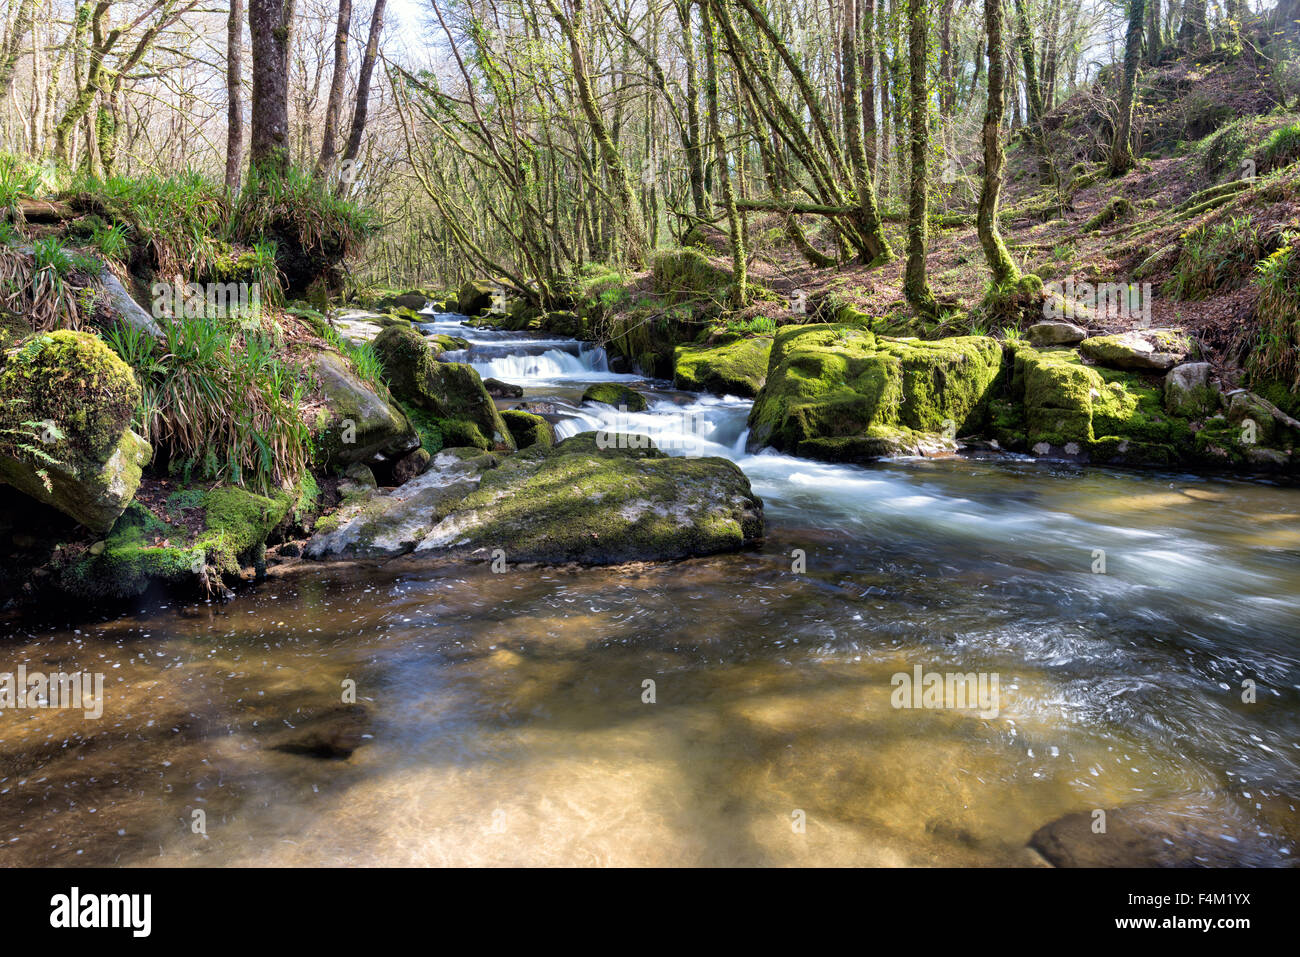 Water flowing through Golitha Falls on Bodmin Moor in Cornwall - Stock Image